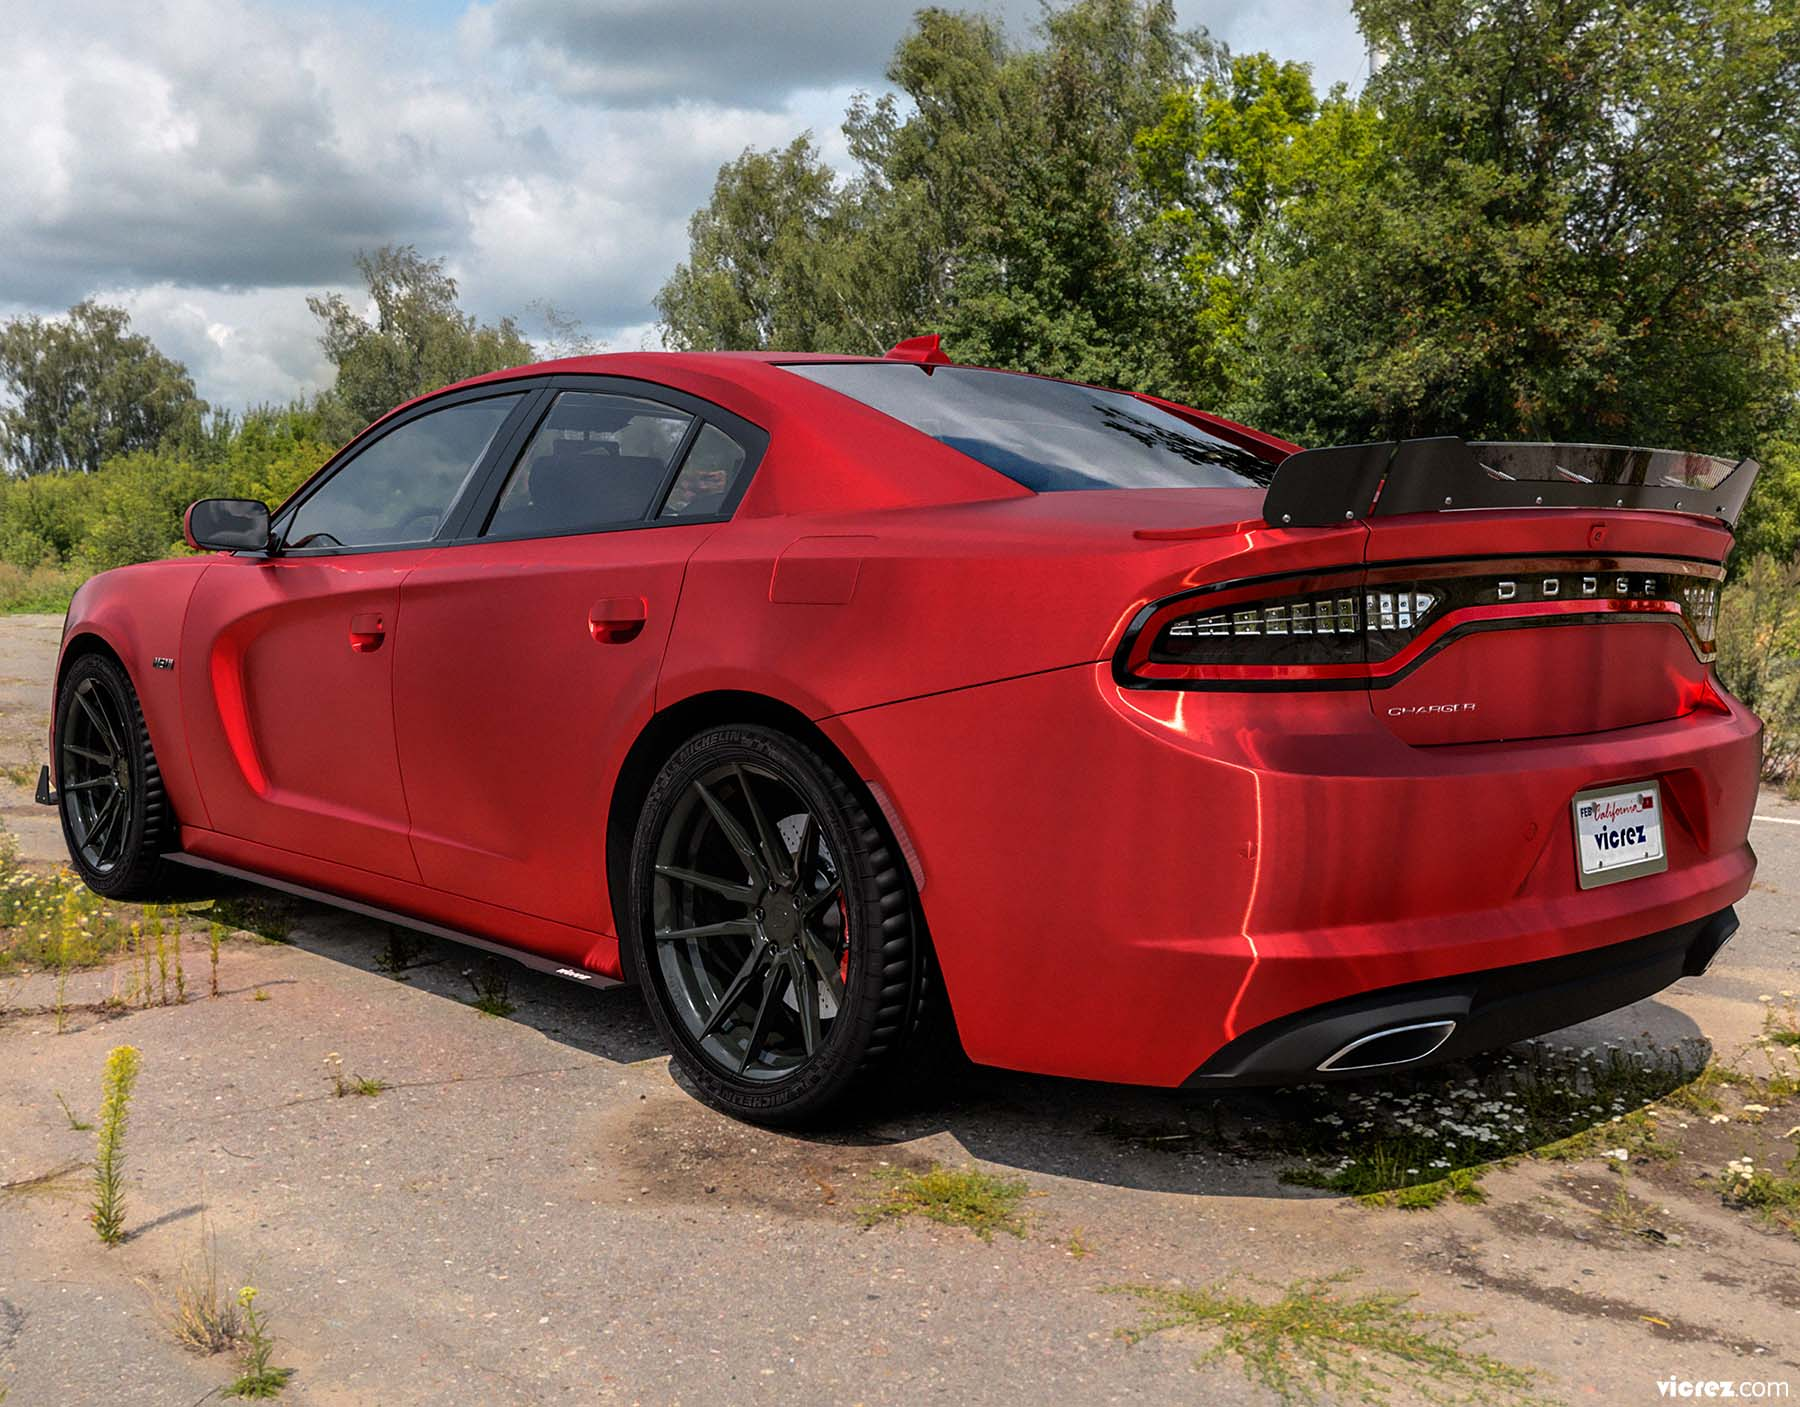 Vicrez V3R Wicker Bill for 3 Piece Spoiler vz102134 | Dodge Charger 2015-2020